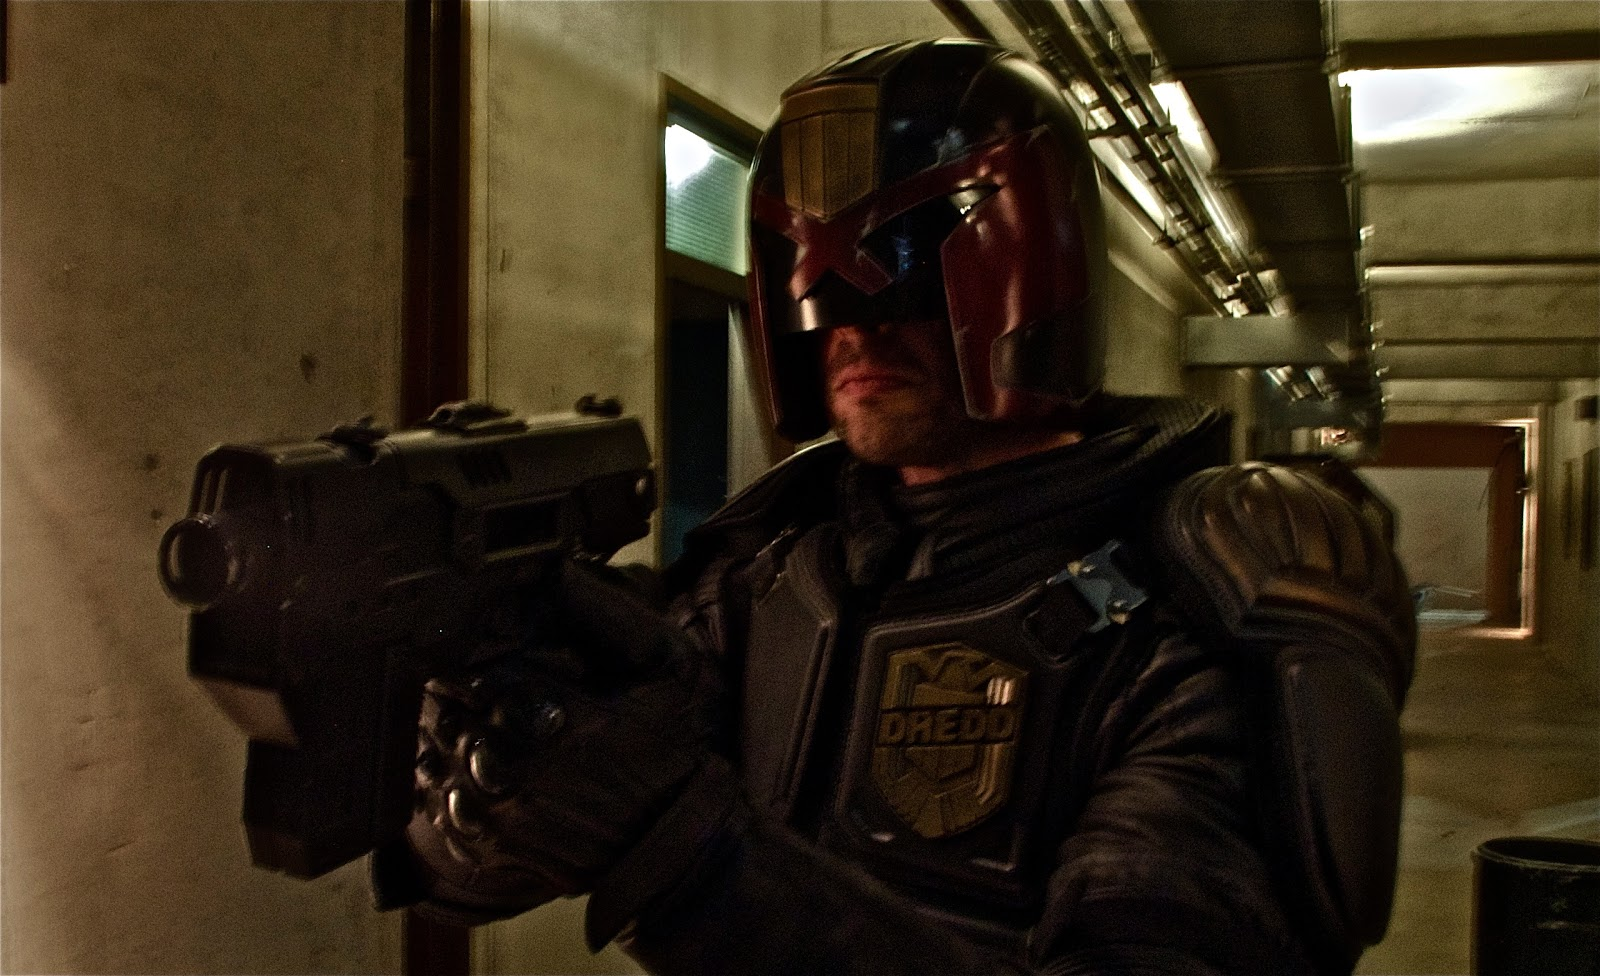 SCHEME 9: First Images of the new JUDGE DREDD movie.